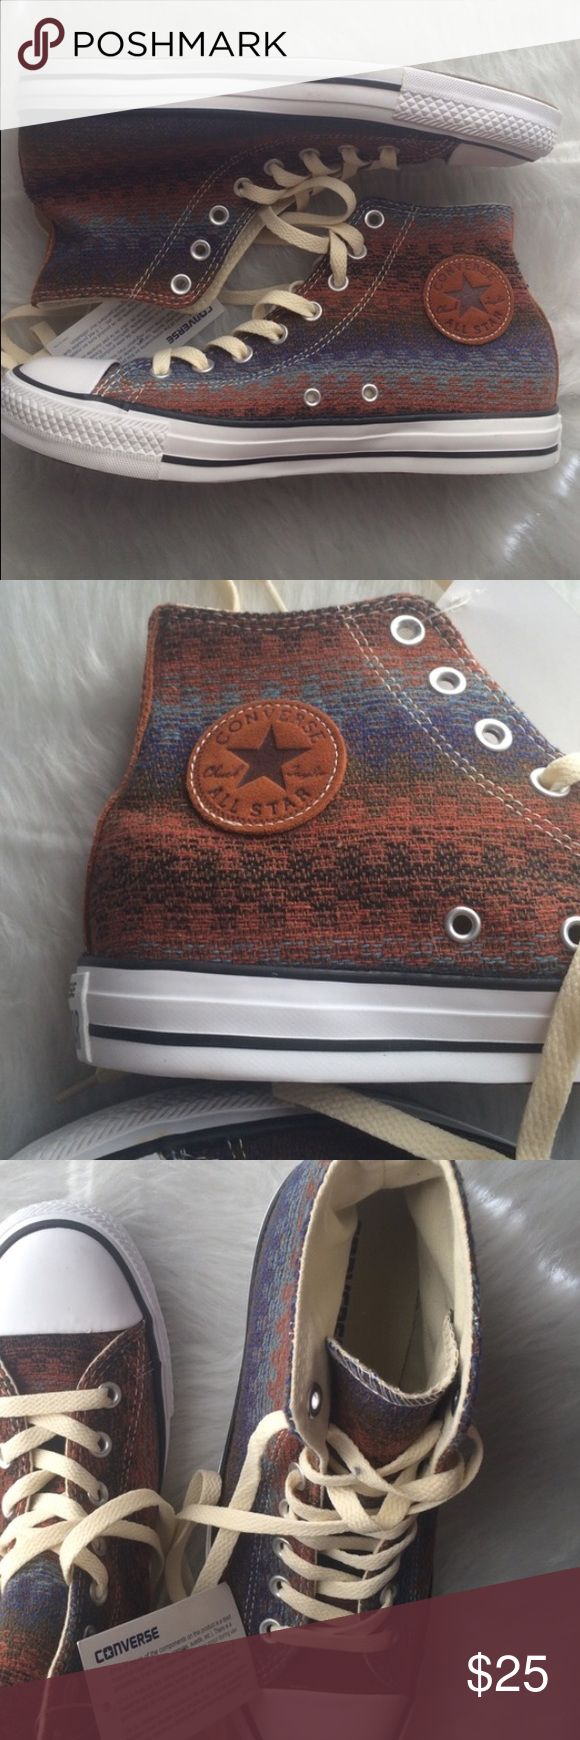 🎉HUGE SALE Converse women's shoes Chuck Taylor's Brand new without box. Size 10 women's Converse Shoes Sneakers